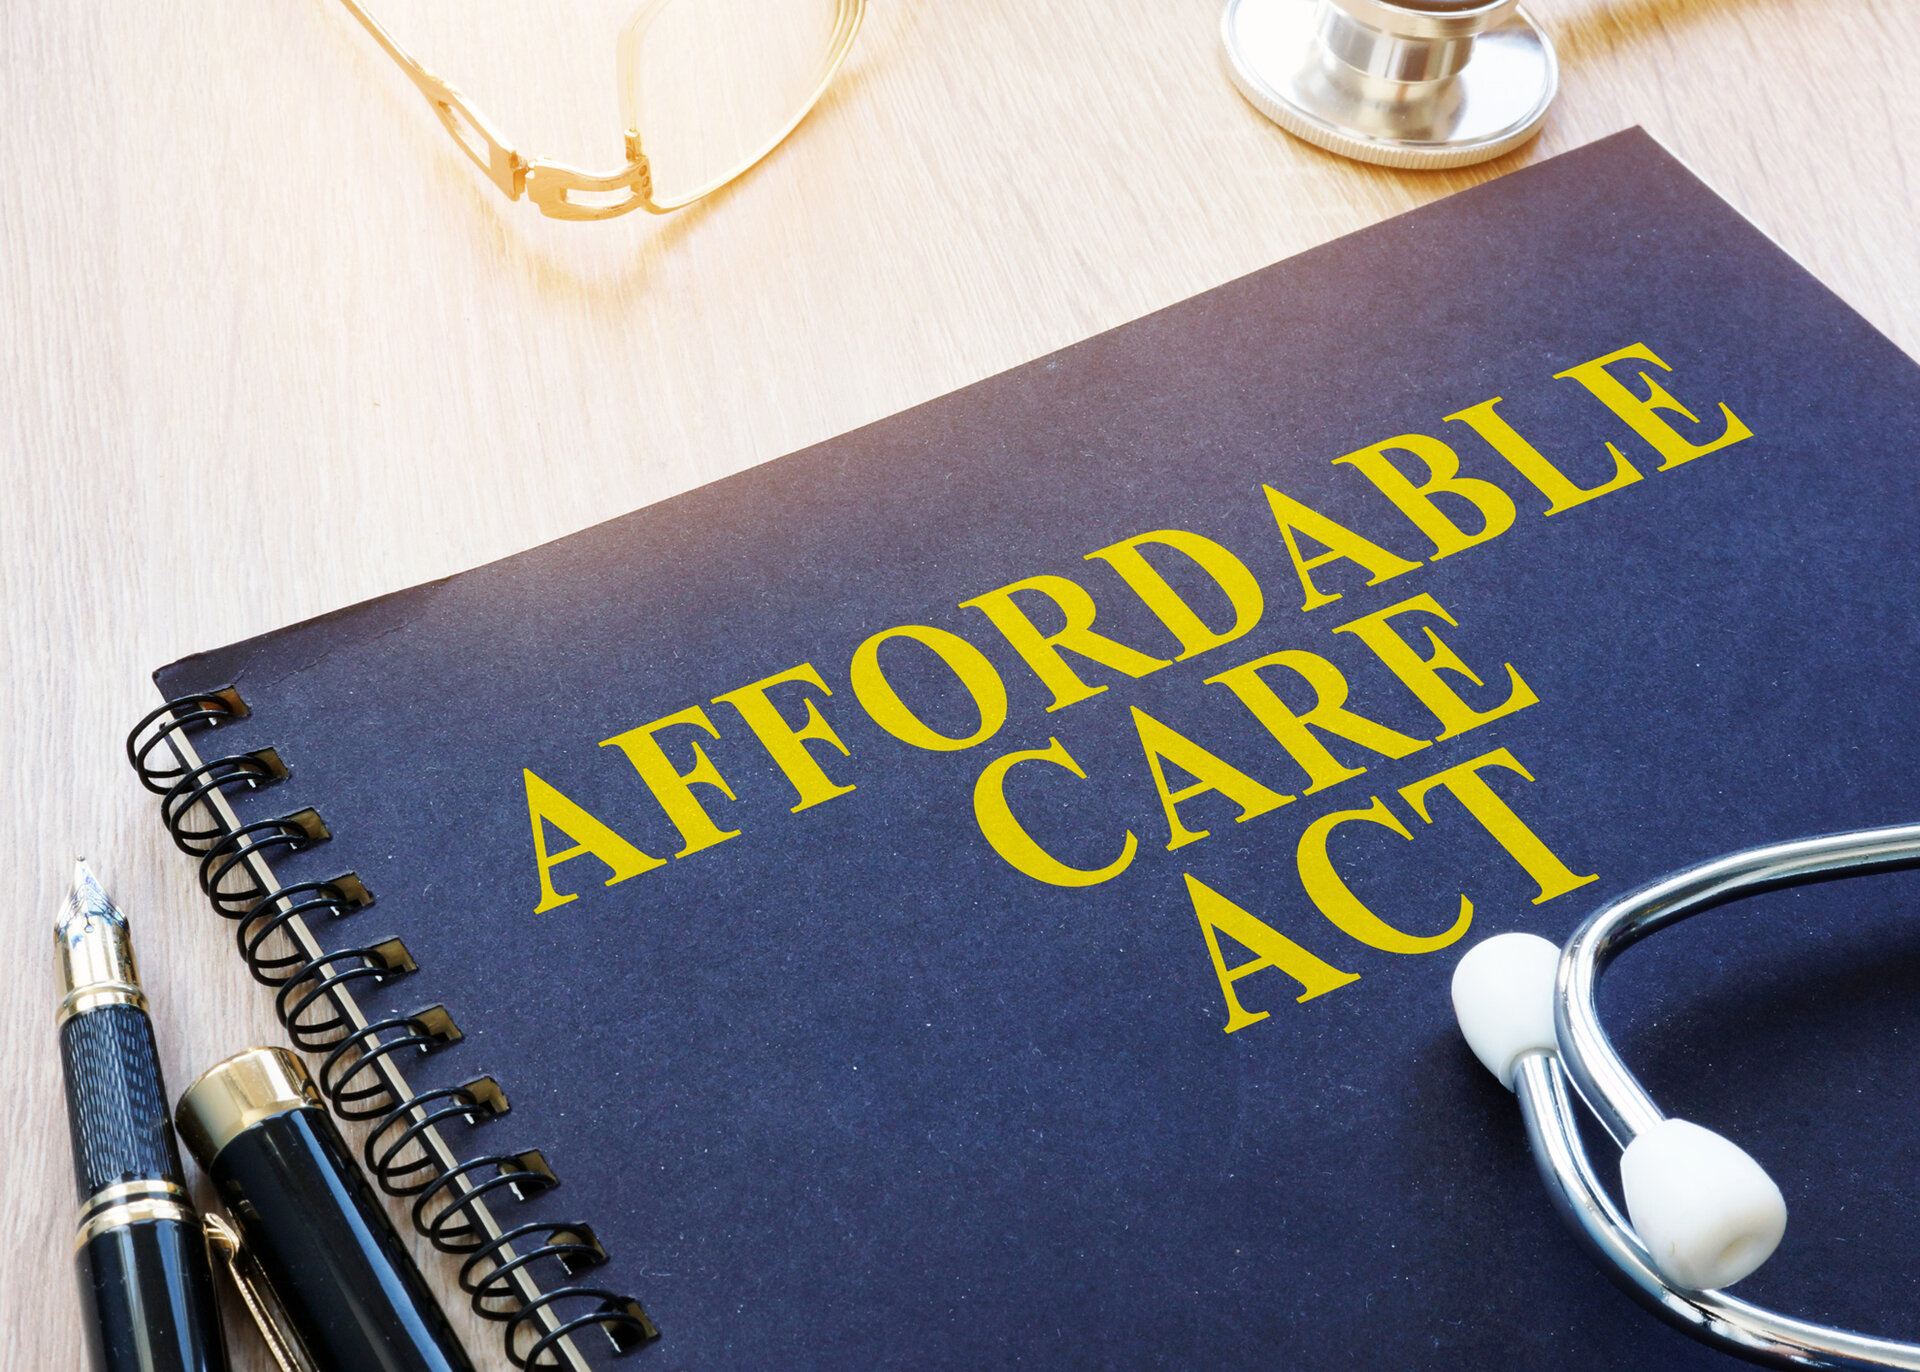 2012 - ApolloMed formed its subsidiary ApolloMed ACO, which was selected by the Centers for Medicare and Medicaid Services to participate as an Accountable Care Organization (ACO) under the Affordable Care Act.